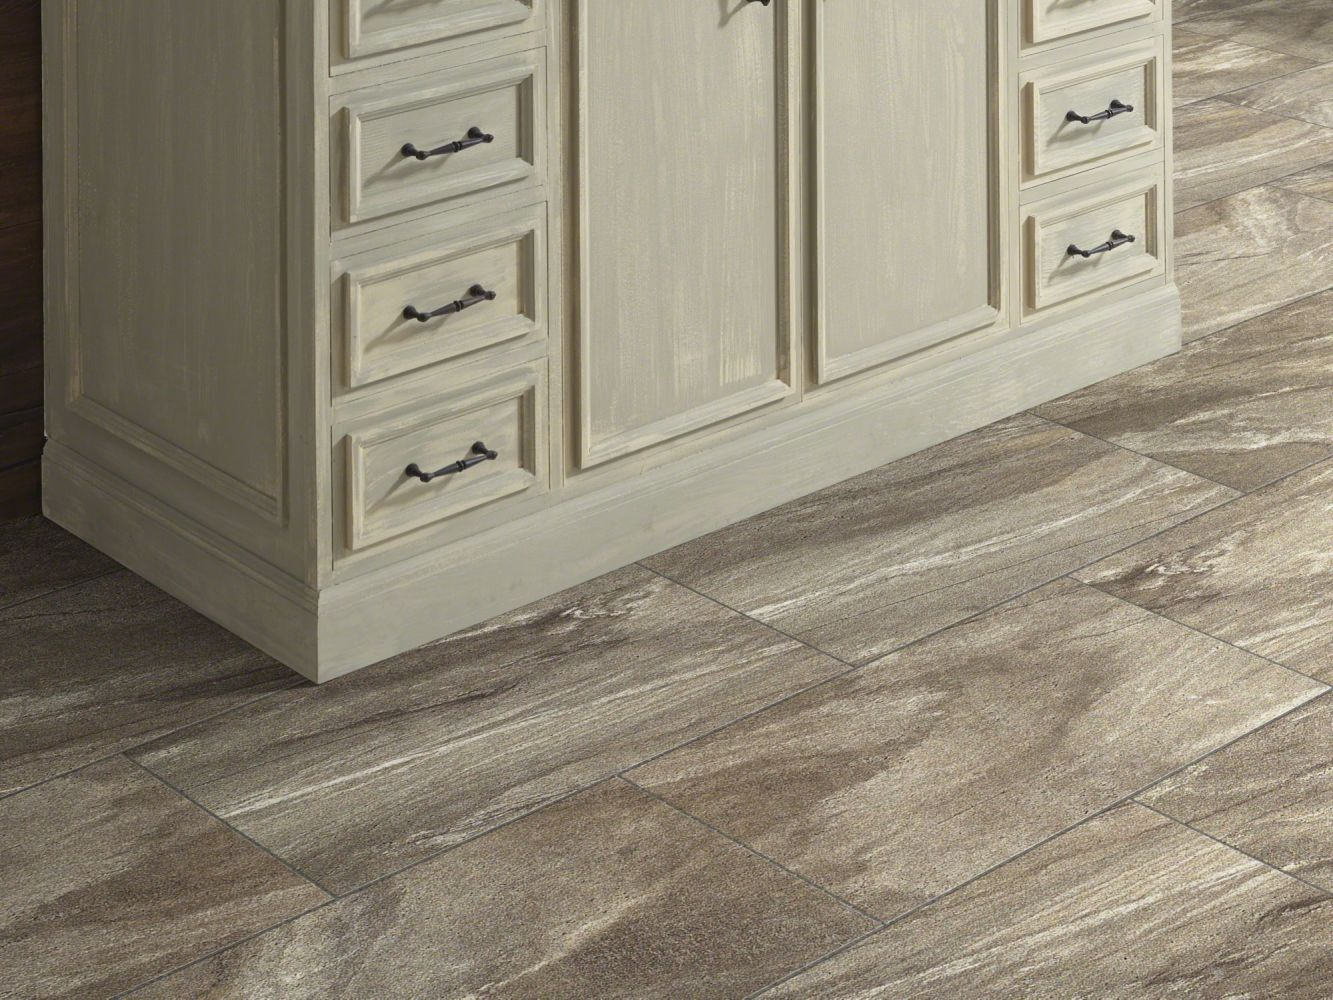 Shaw Floors Vinyl Residential Journey Tile Nepal 00741_0494V